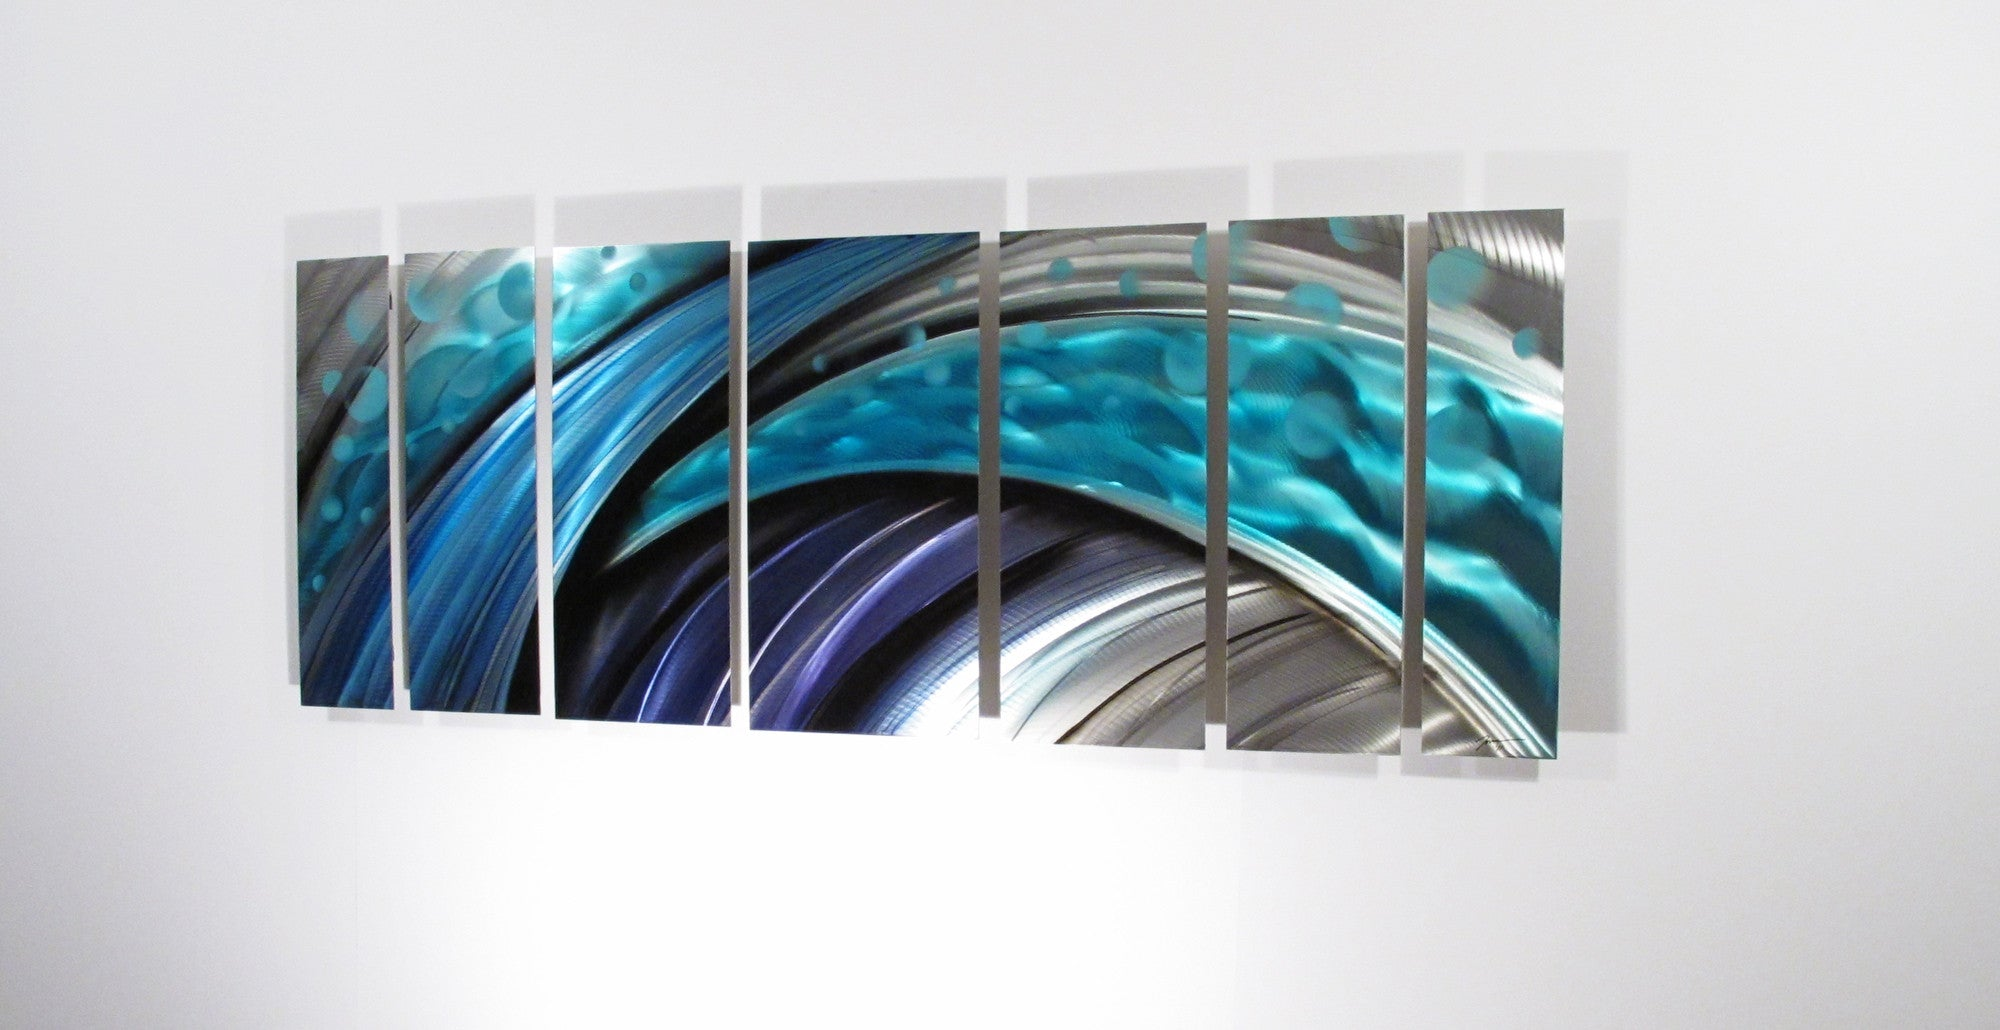 "Blue Metal Wall Art Unique Typhoon"" Large Modern Abstract Metal Wall Art Sculpture Blue  Dv8 Review"